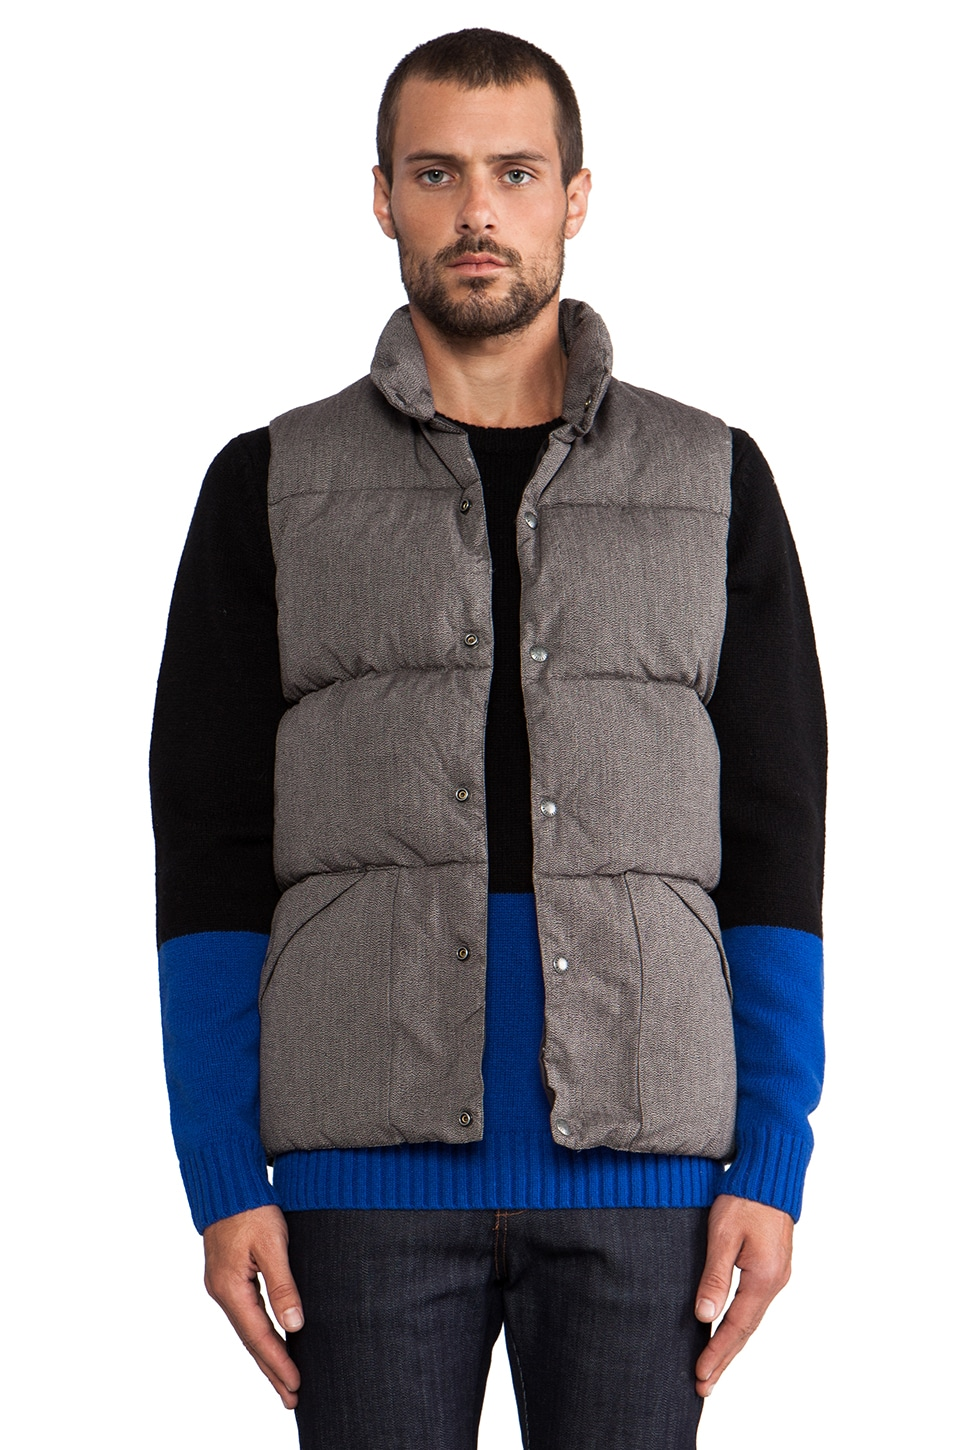 Penfield Blue Label Outback Insulated Vest in Salt/ Pepper